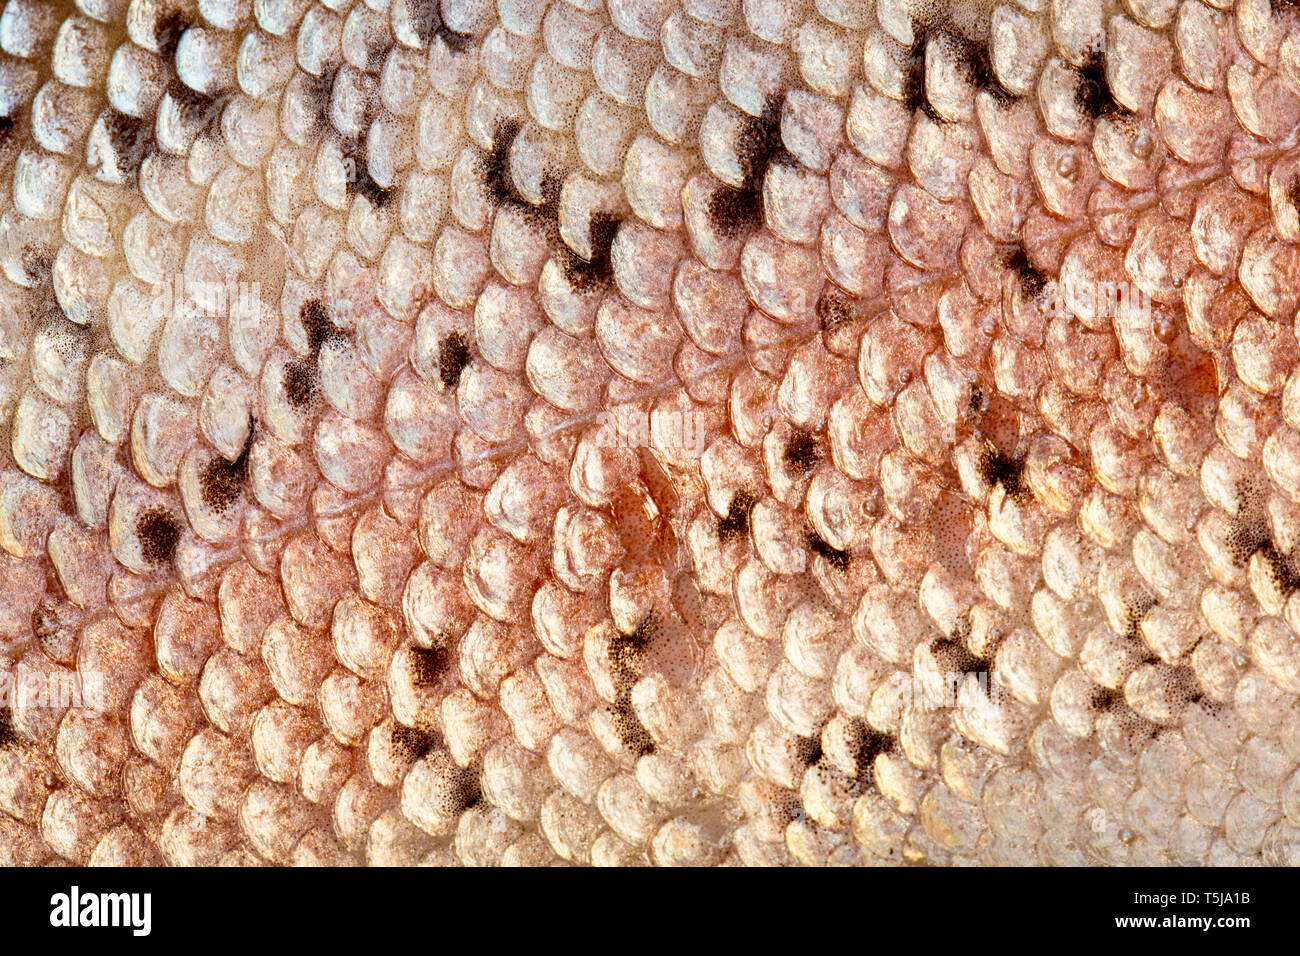 Close up photograph showing the scales and colouration of a rainbow trout, Oncorhynchus mykiss, that was caught fly fishing in a stocked reservoir in  - Stock Image